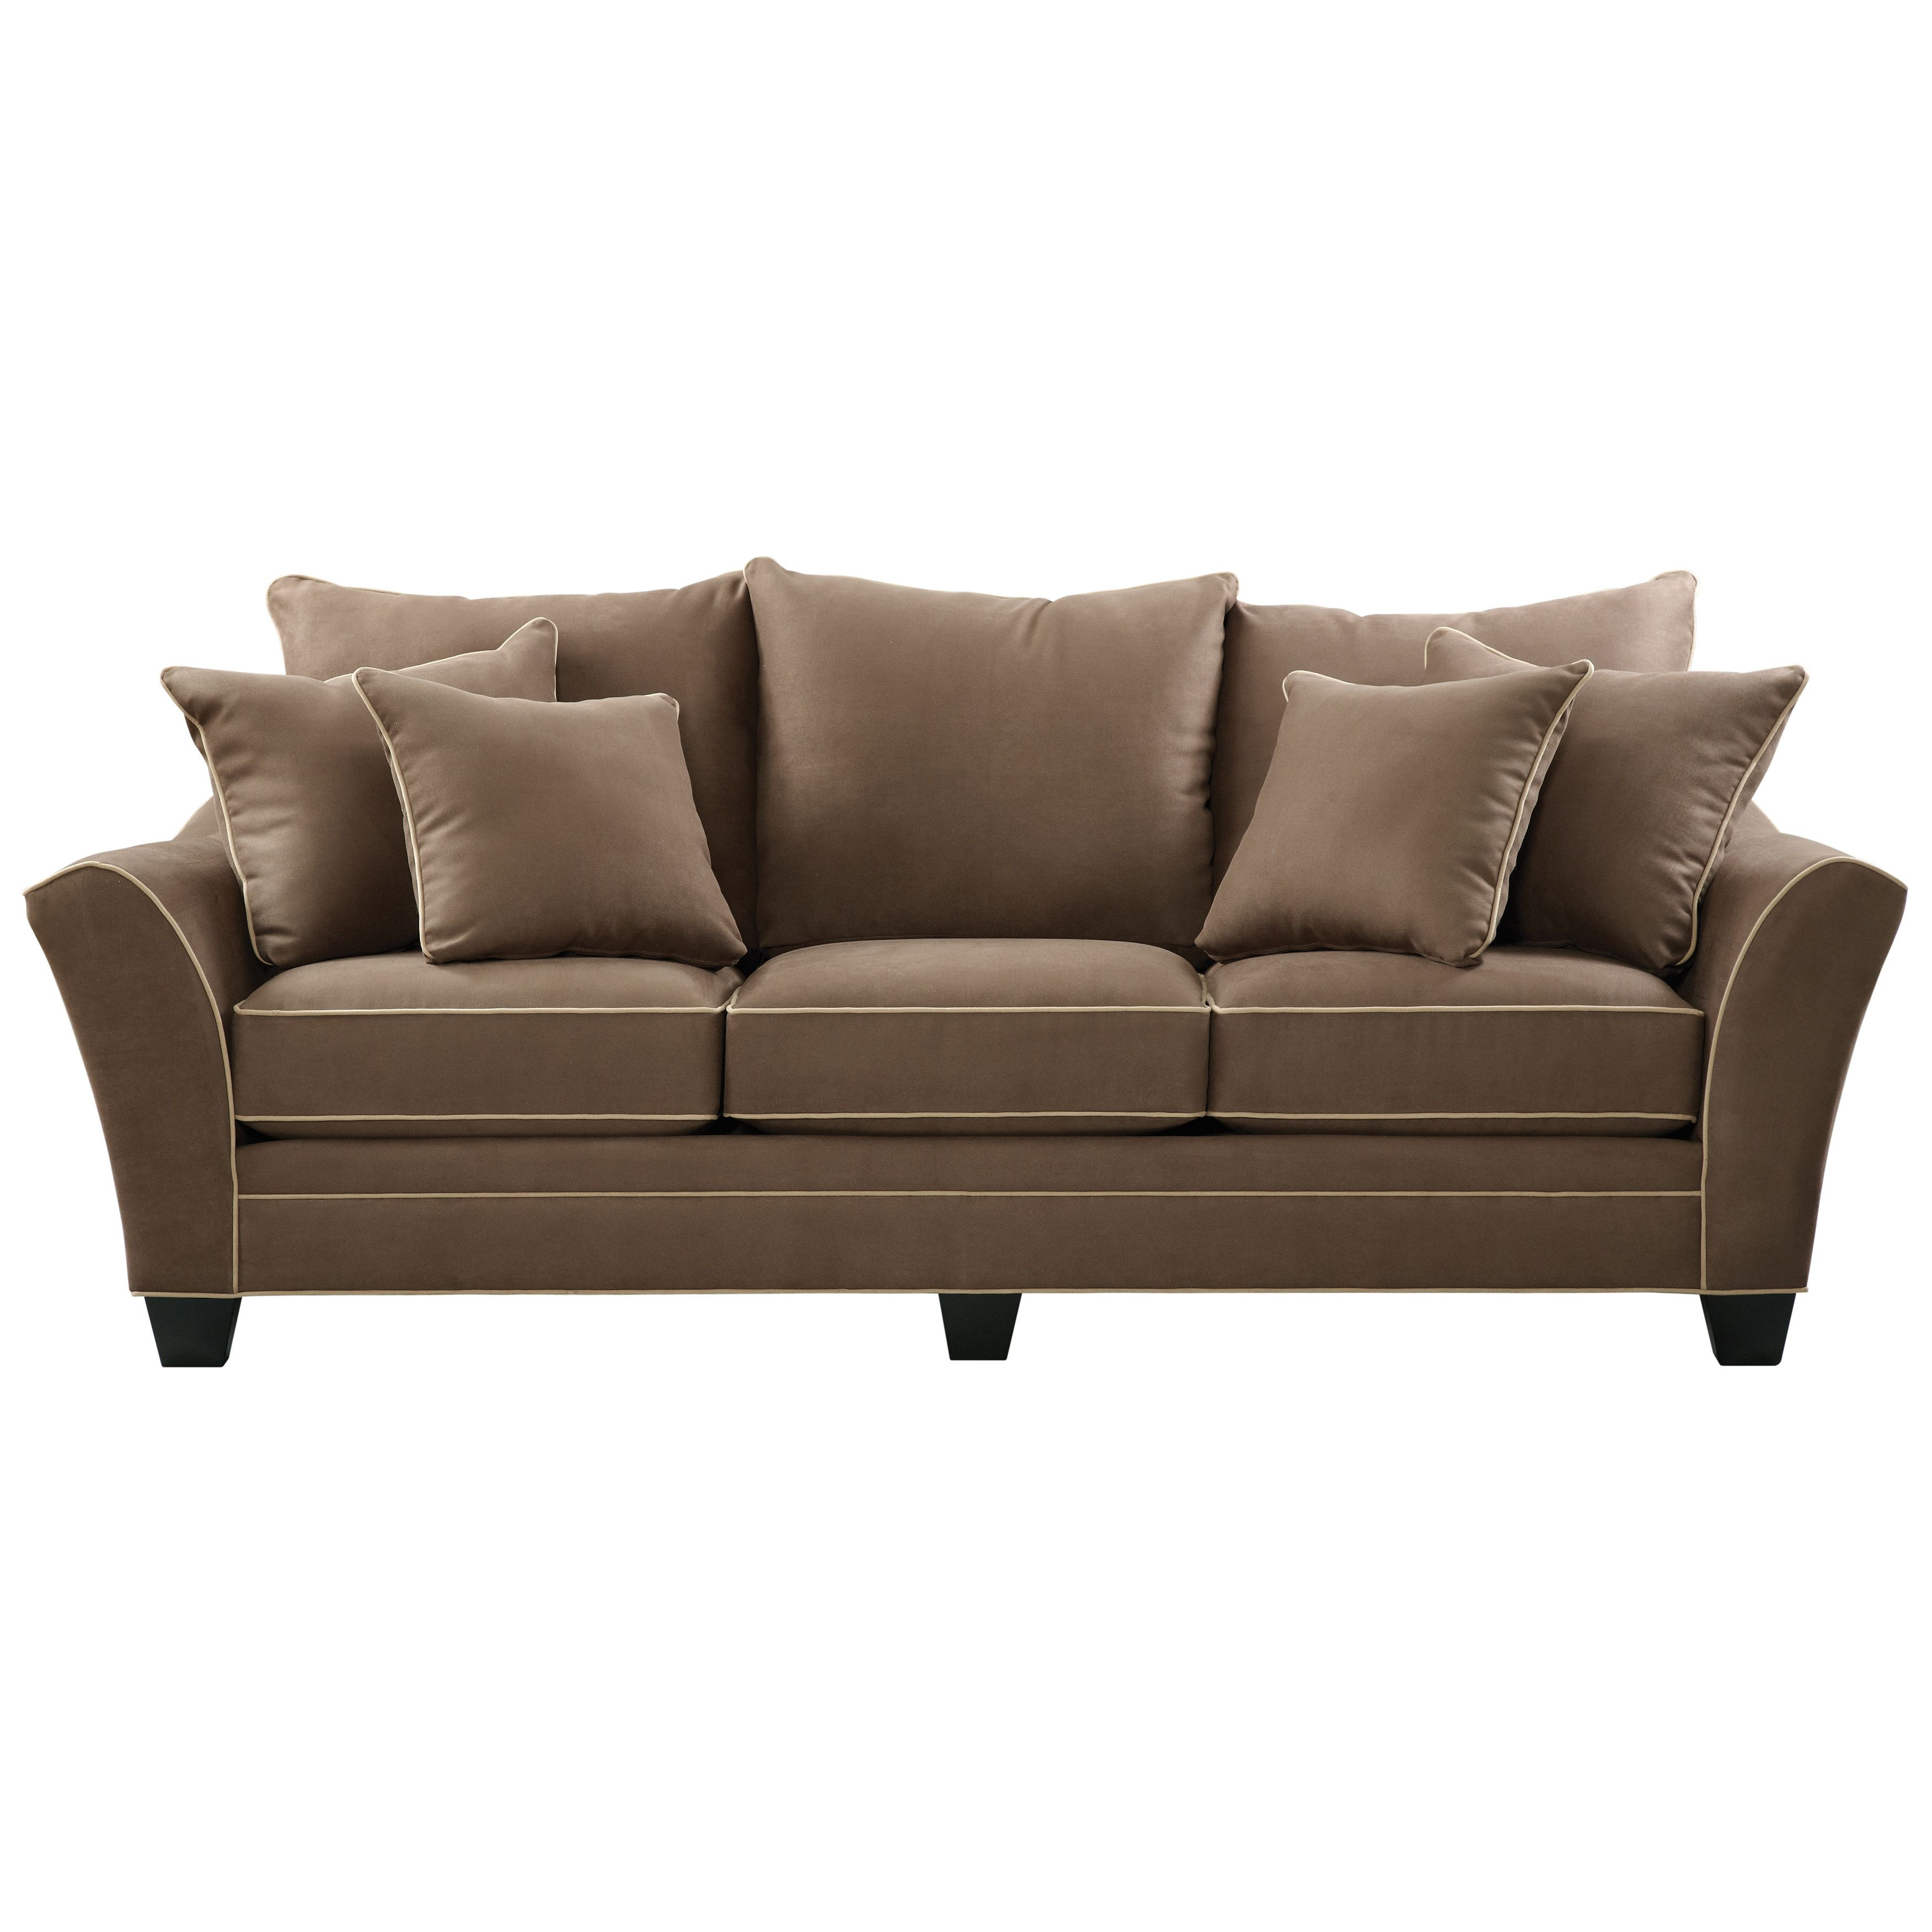 Best The Dillon Sofa Is Casual In Style And Comfort 400 x 300